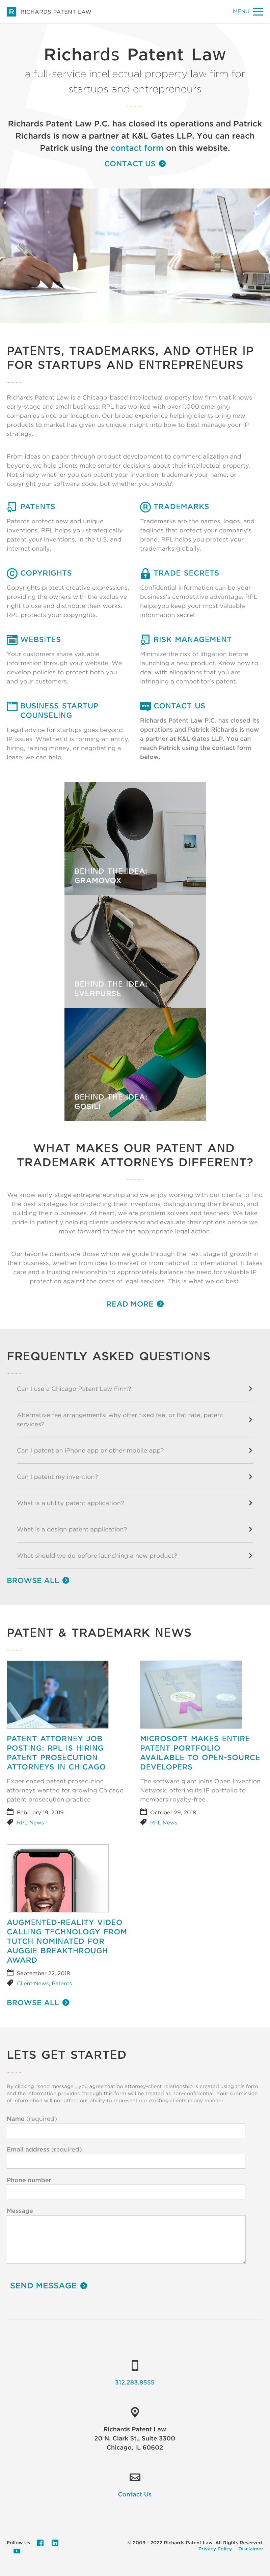 Richards Patent Law P.C. - Chicago IL Lawyers